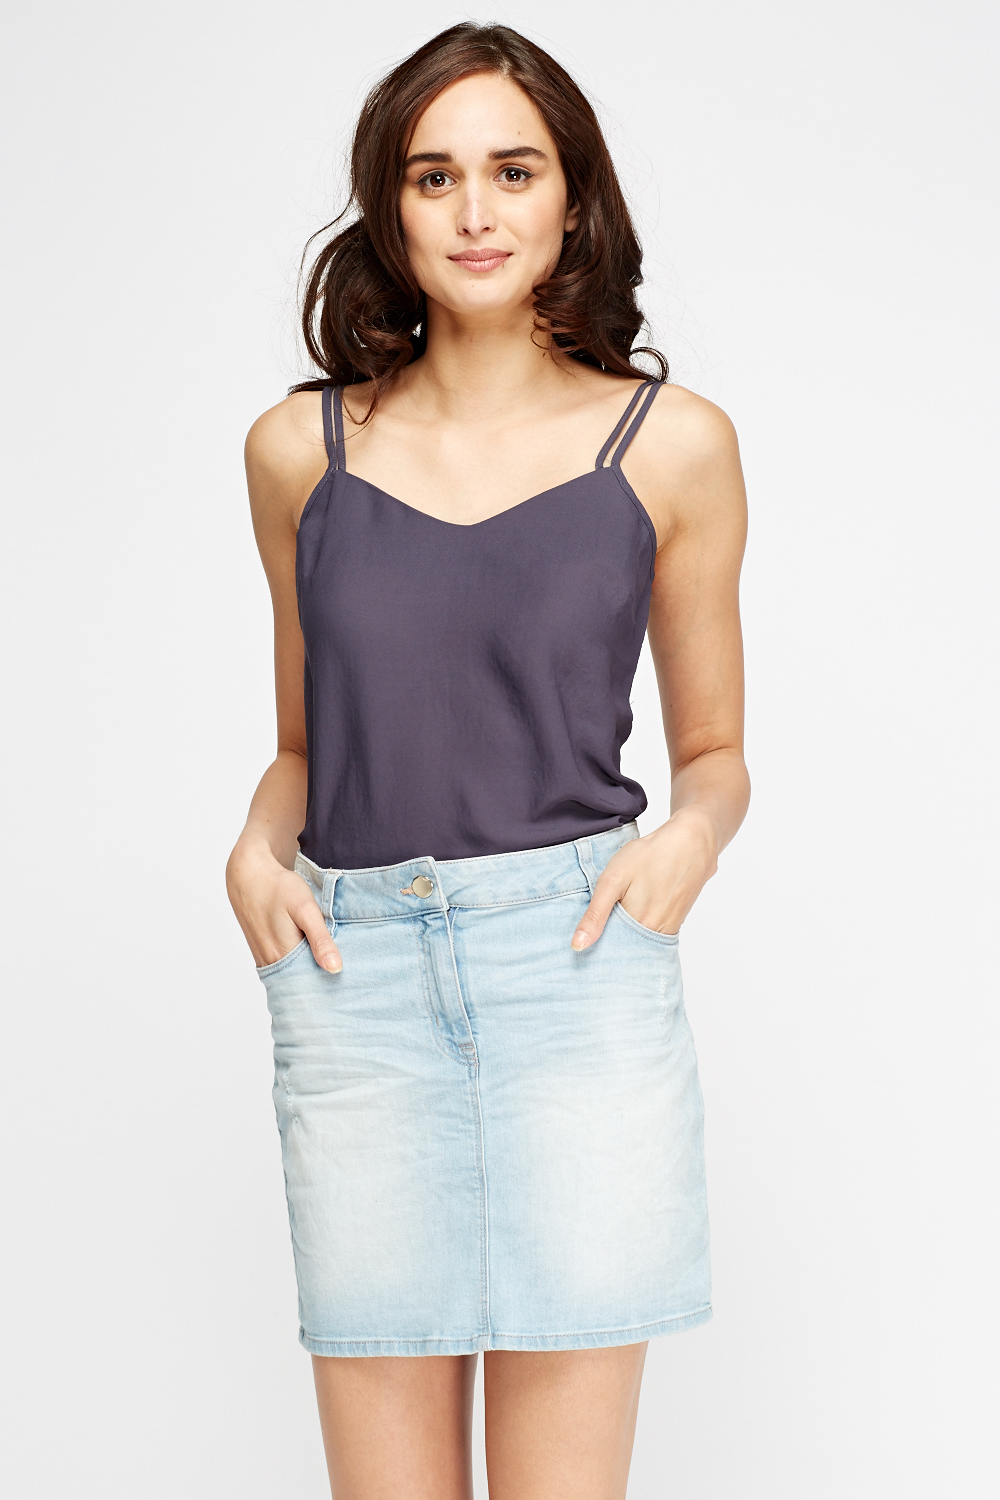 Twin Strap Basic Cami Top Grey Just 163 5